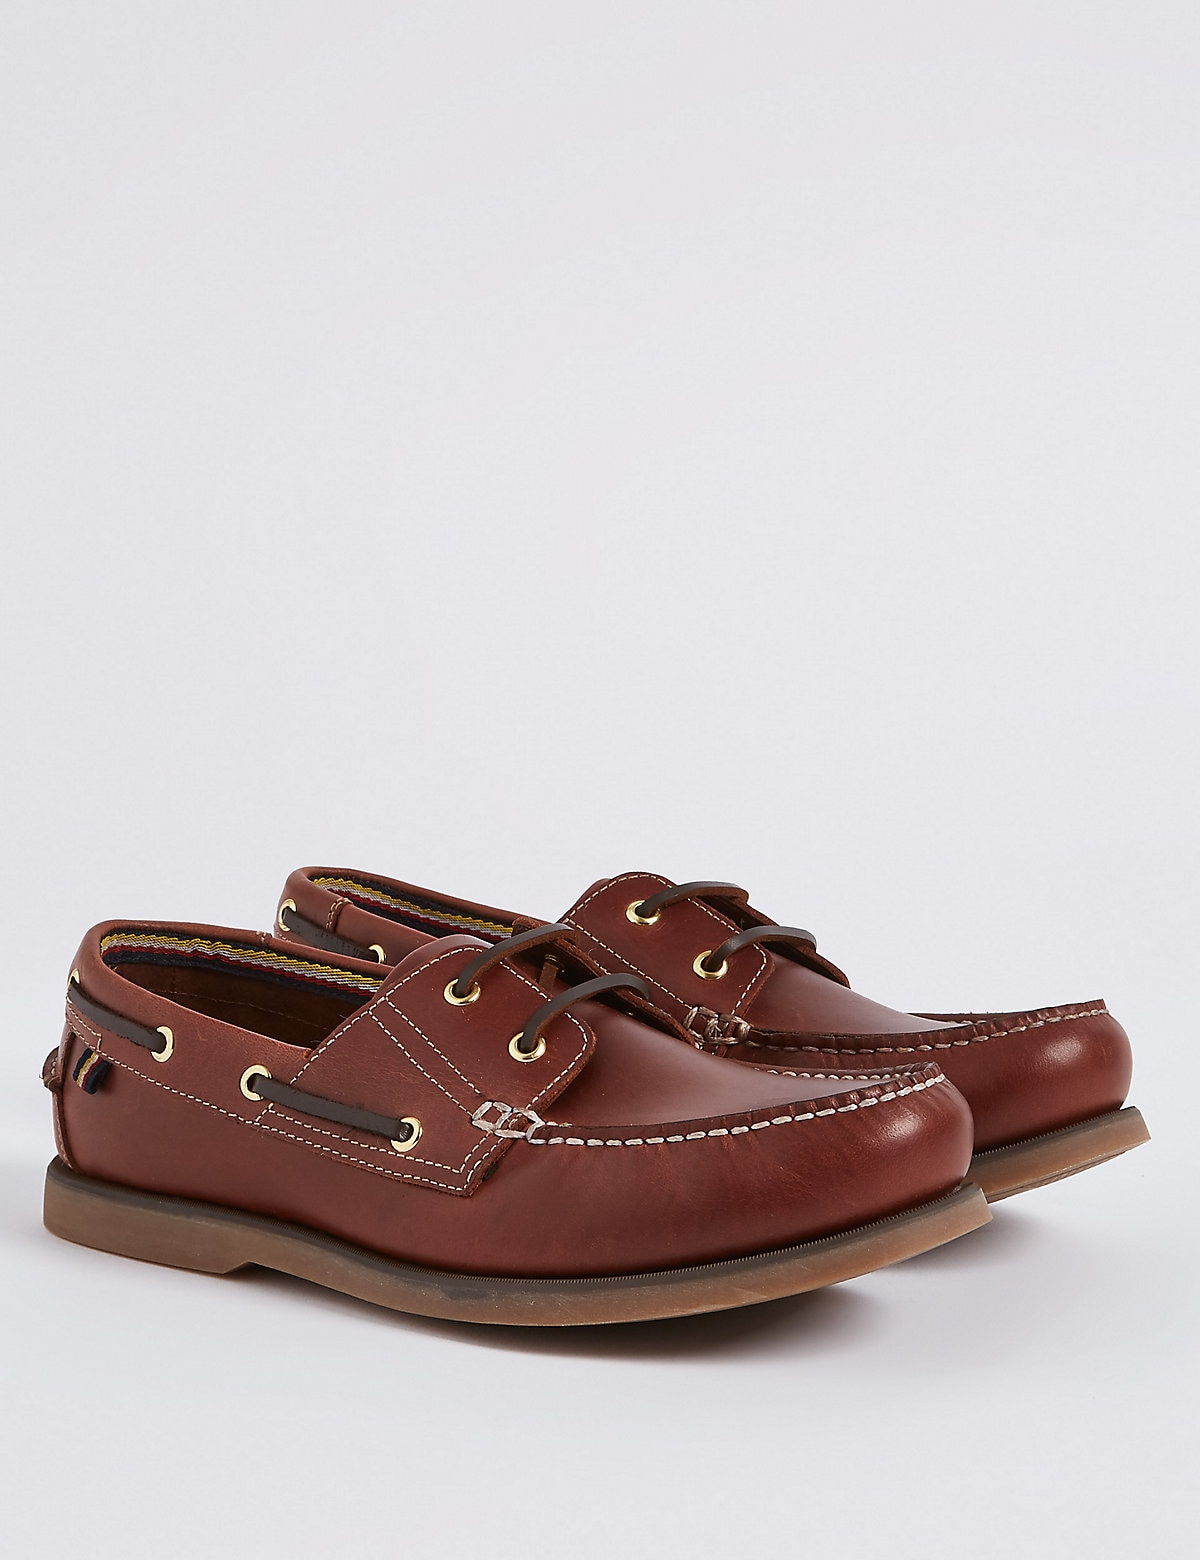 Marks & Spencer Rich Brown Leather Lace-up Boat Shoes with Freshfeet™